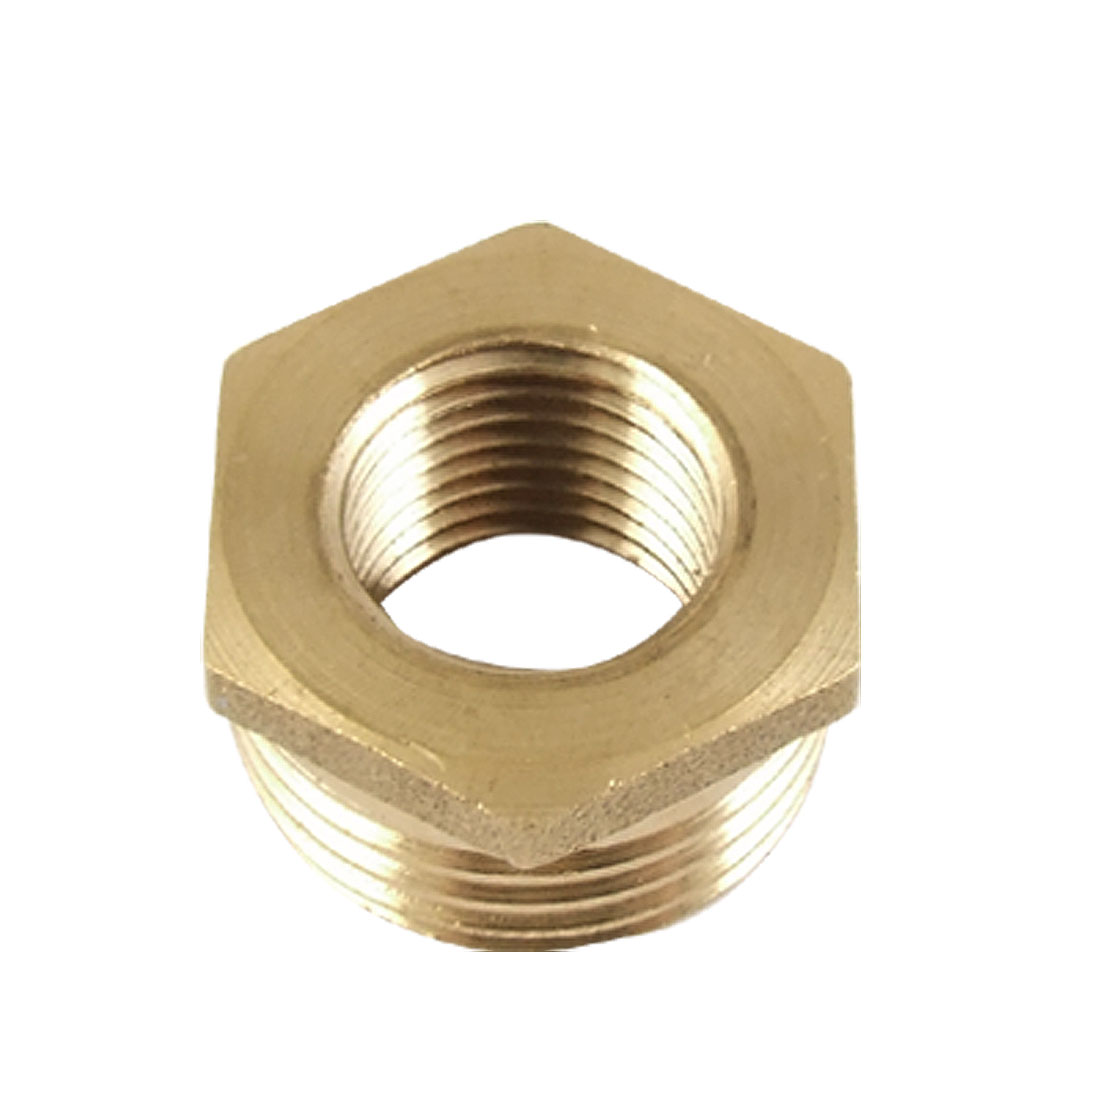 11-9-x-20-5mm-Hex-Brass-Reducing-Bushing-Pipe-Fitting